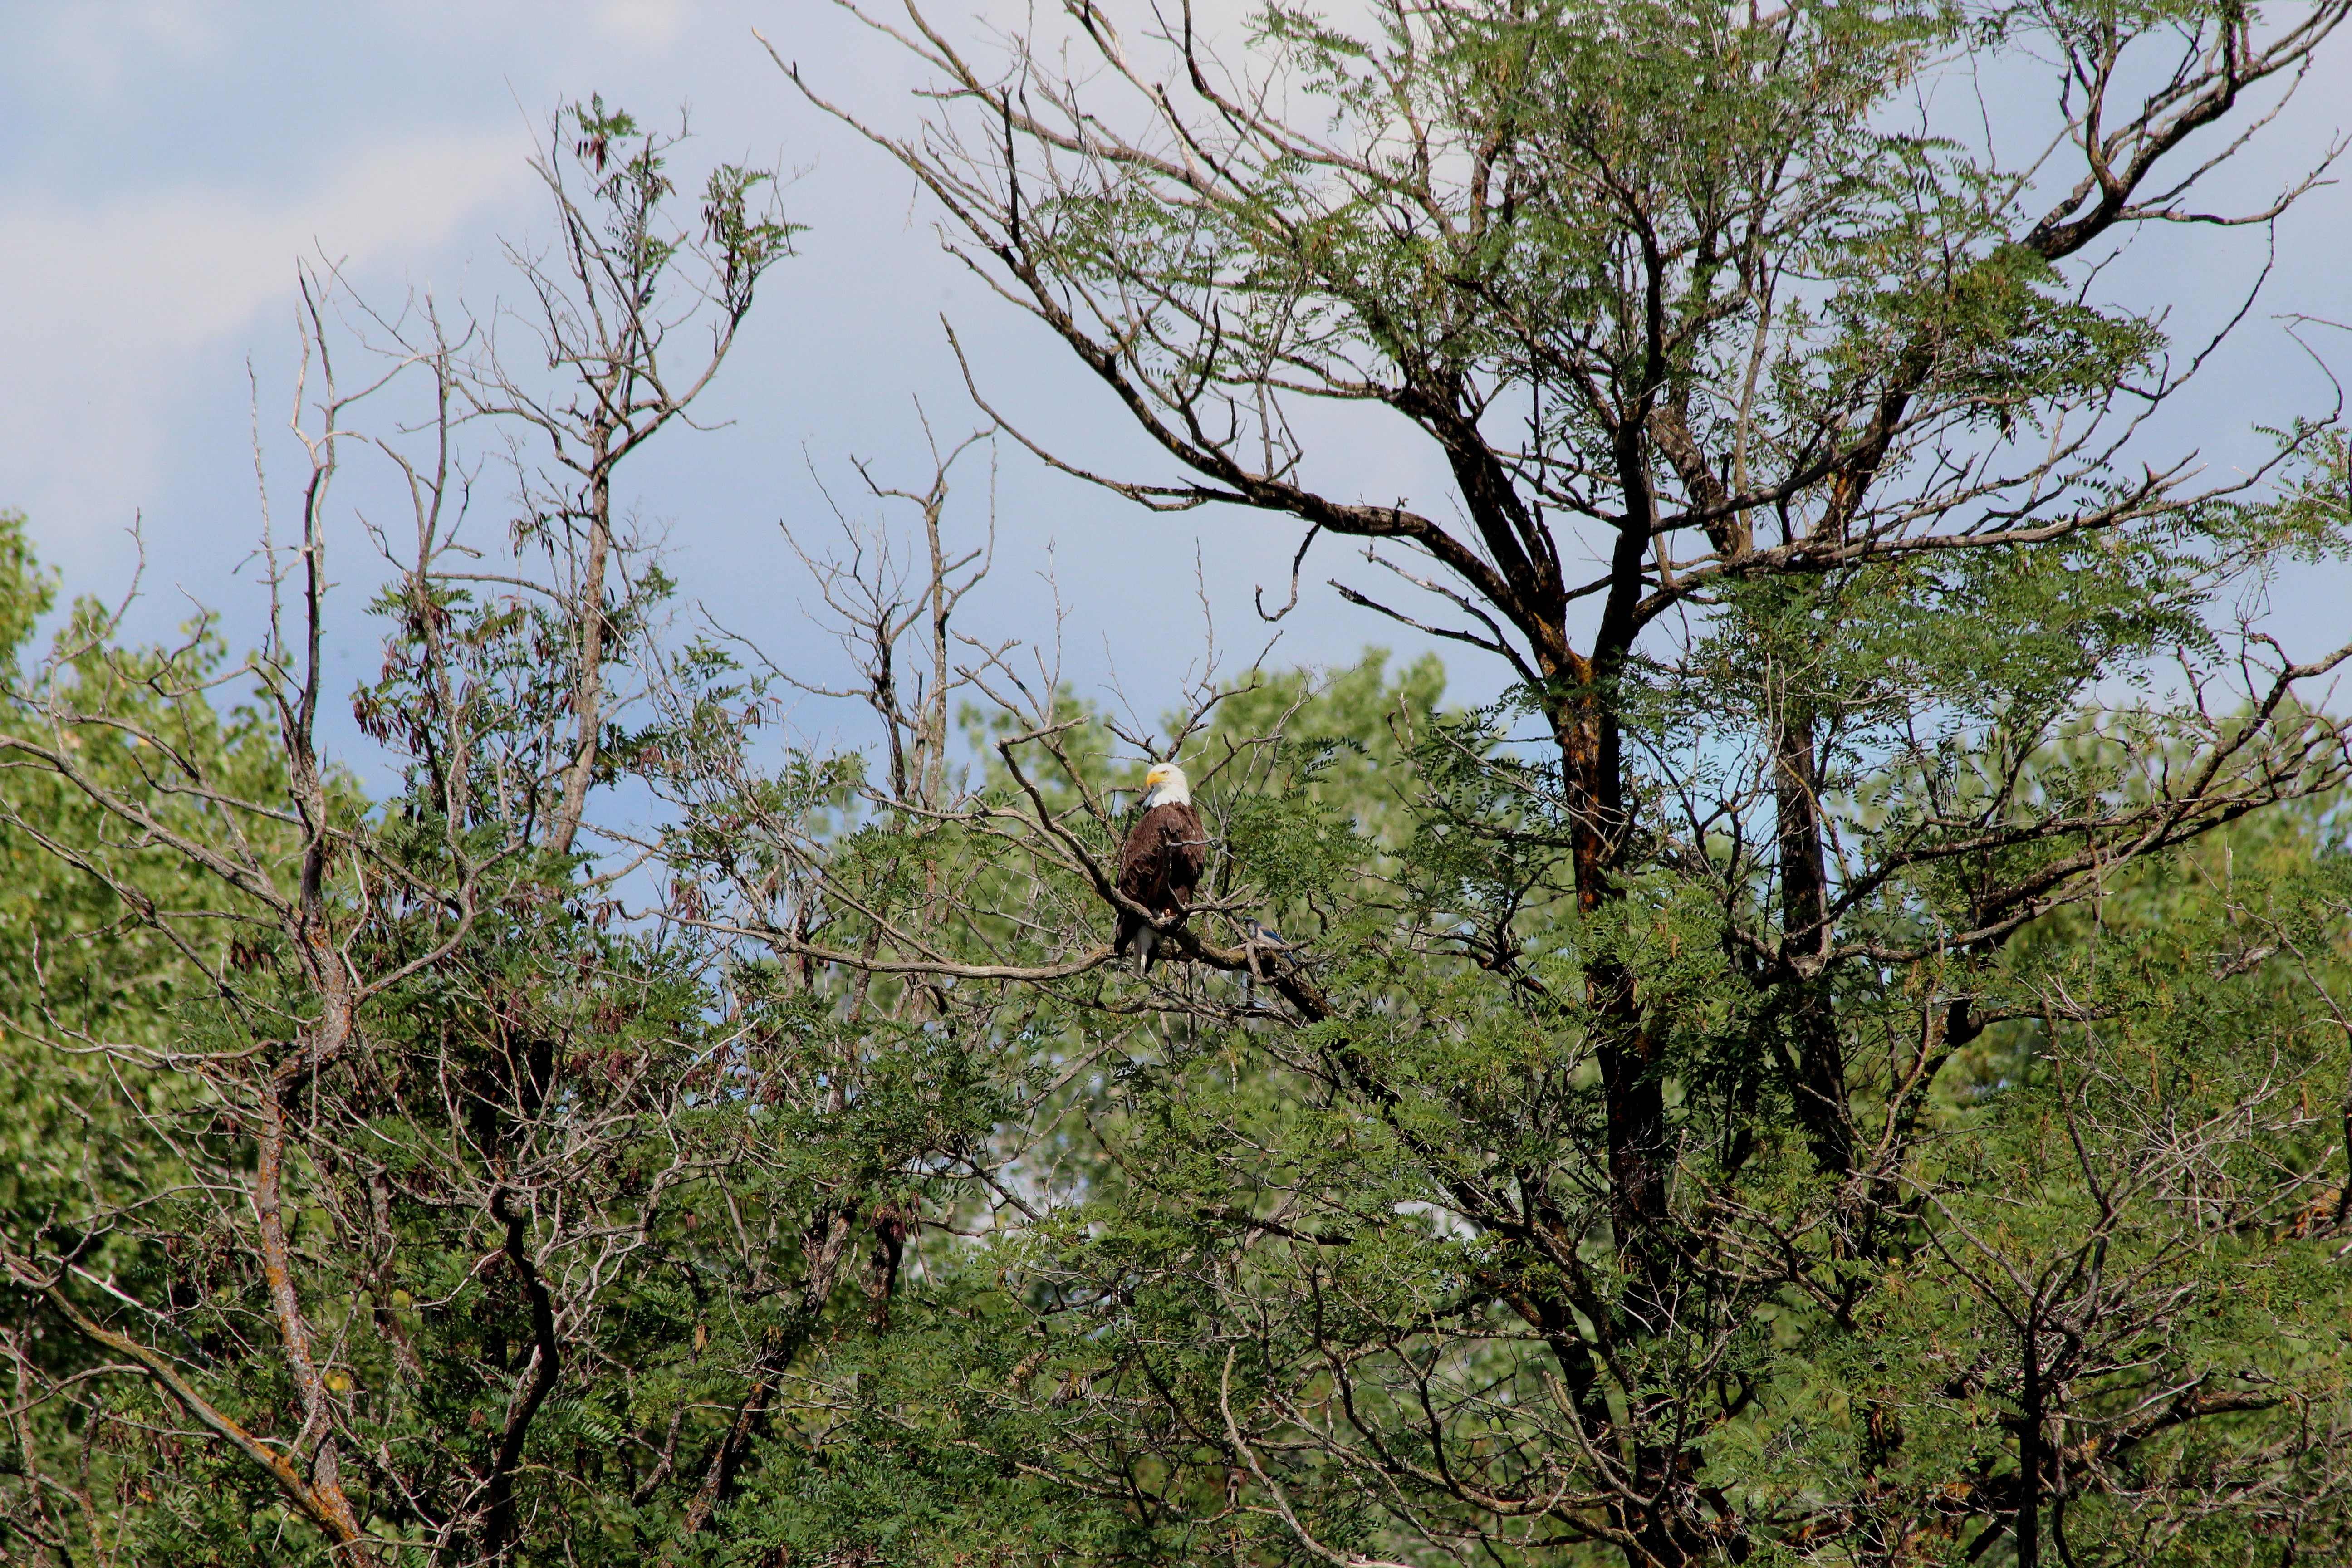 Eagle on libertys island spirit and liberty nest in